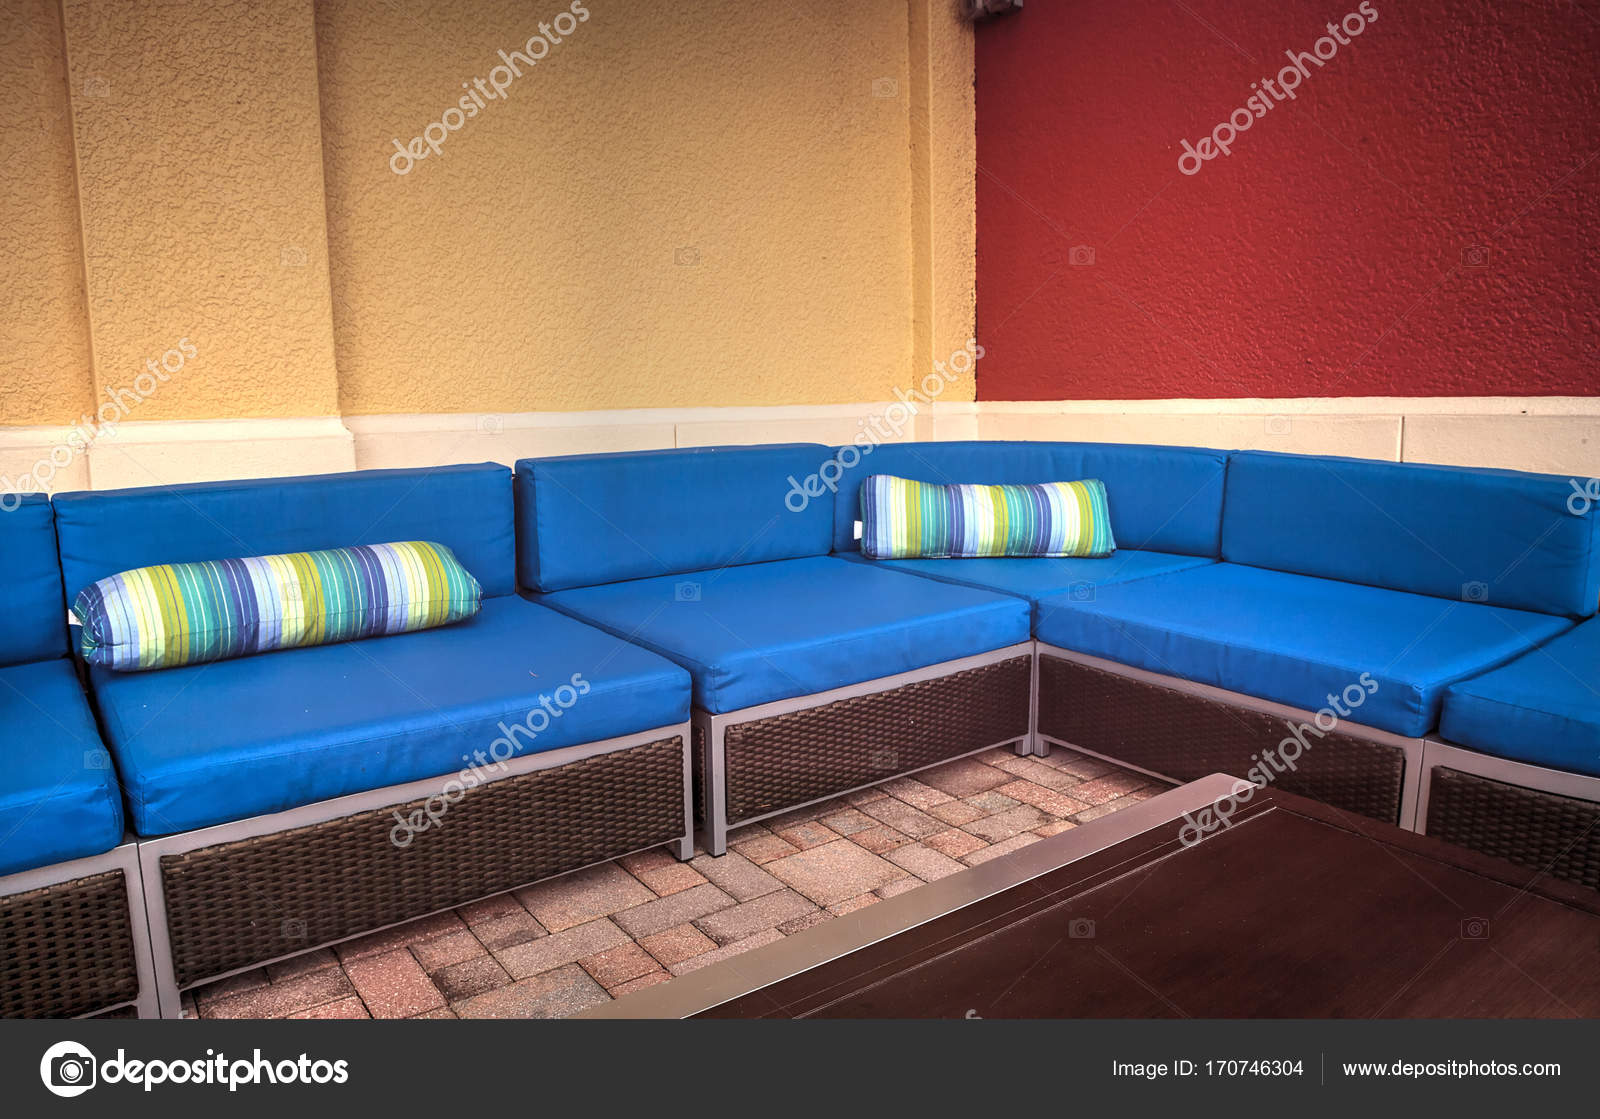 Admirable Tropical Blue Couch Furniture Stock Photo C Stephstarr9363 Bralicious Painted Fabric Chair Ideas Braliciousco